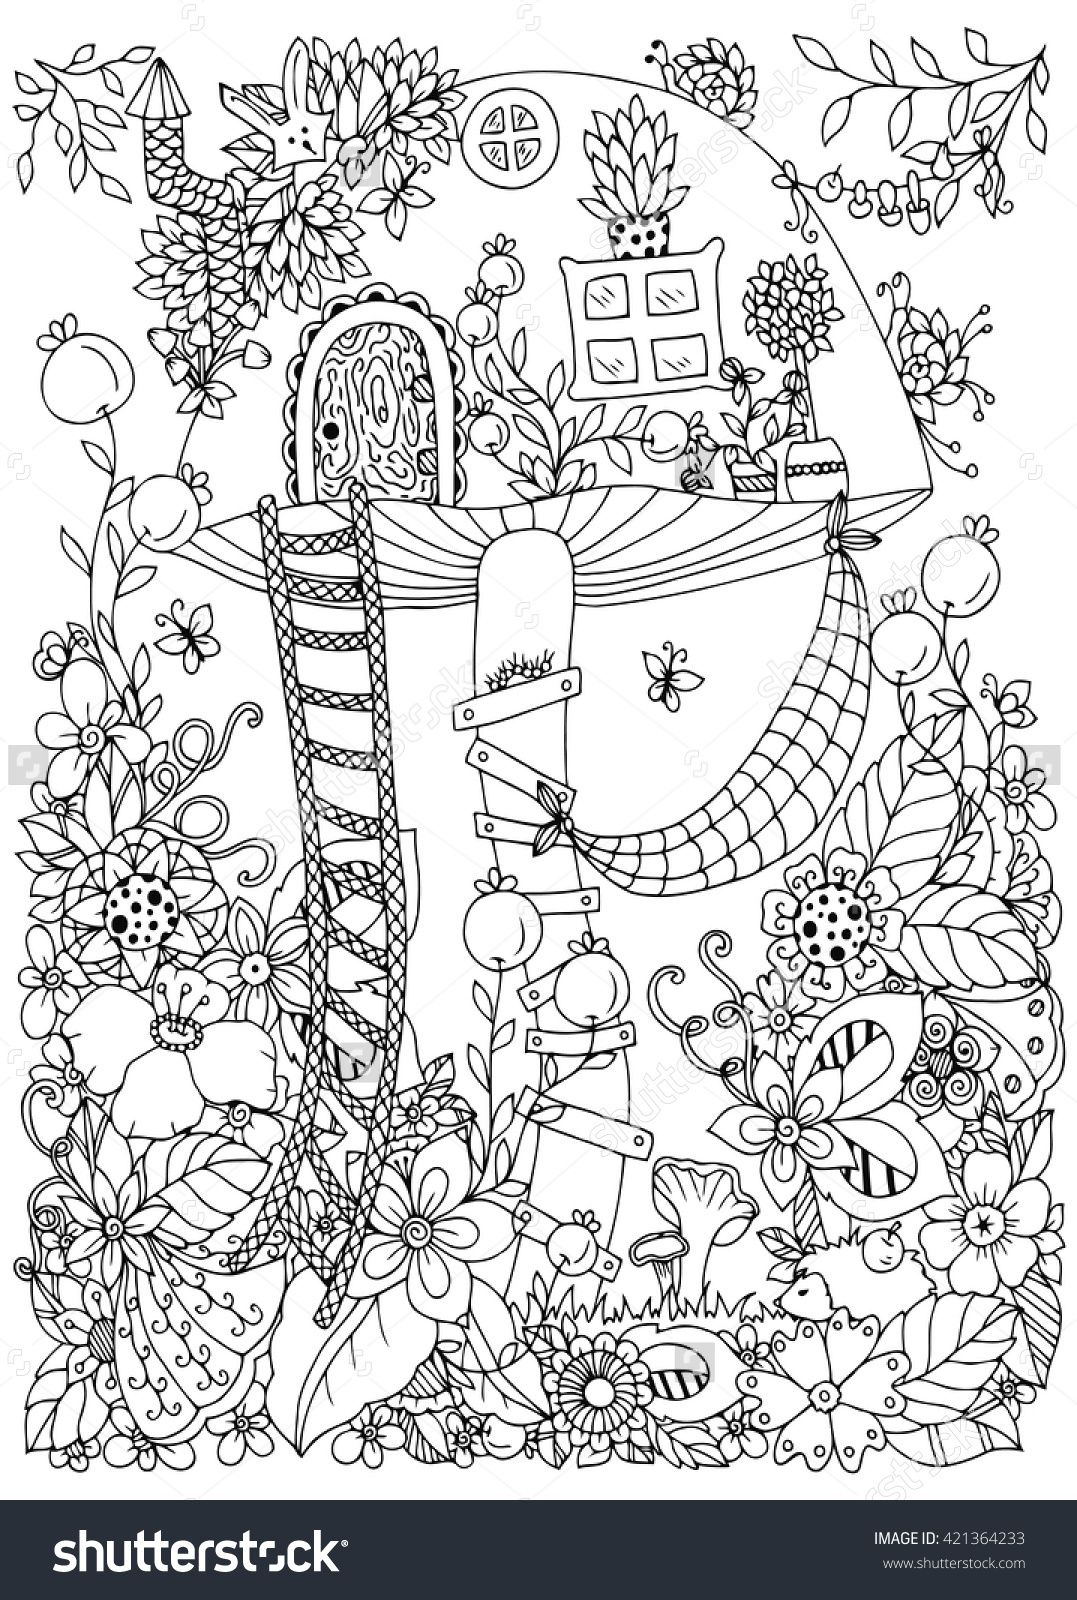 Ausmalbilder Mandala Herbst : Vector Illustration Zen Tangle House Of The Fungus In The Forest